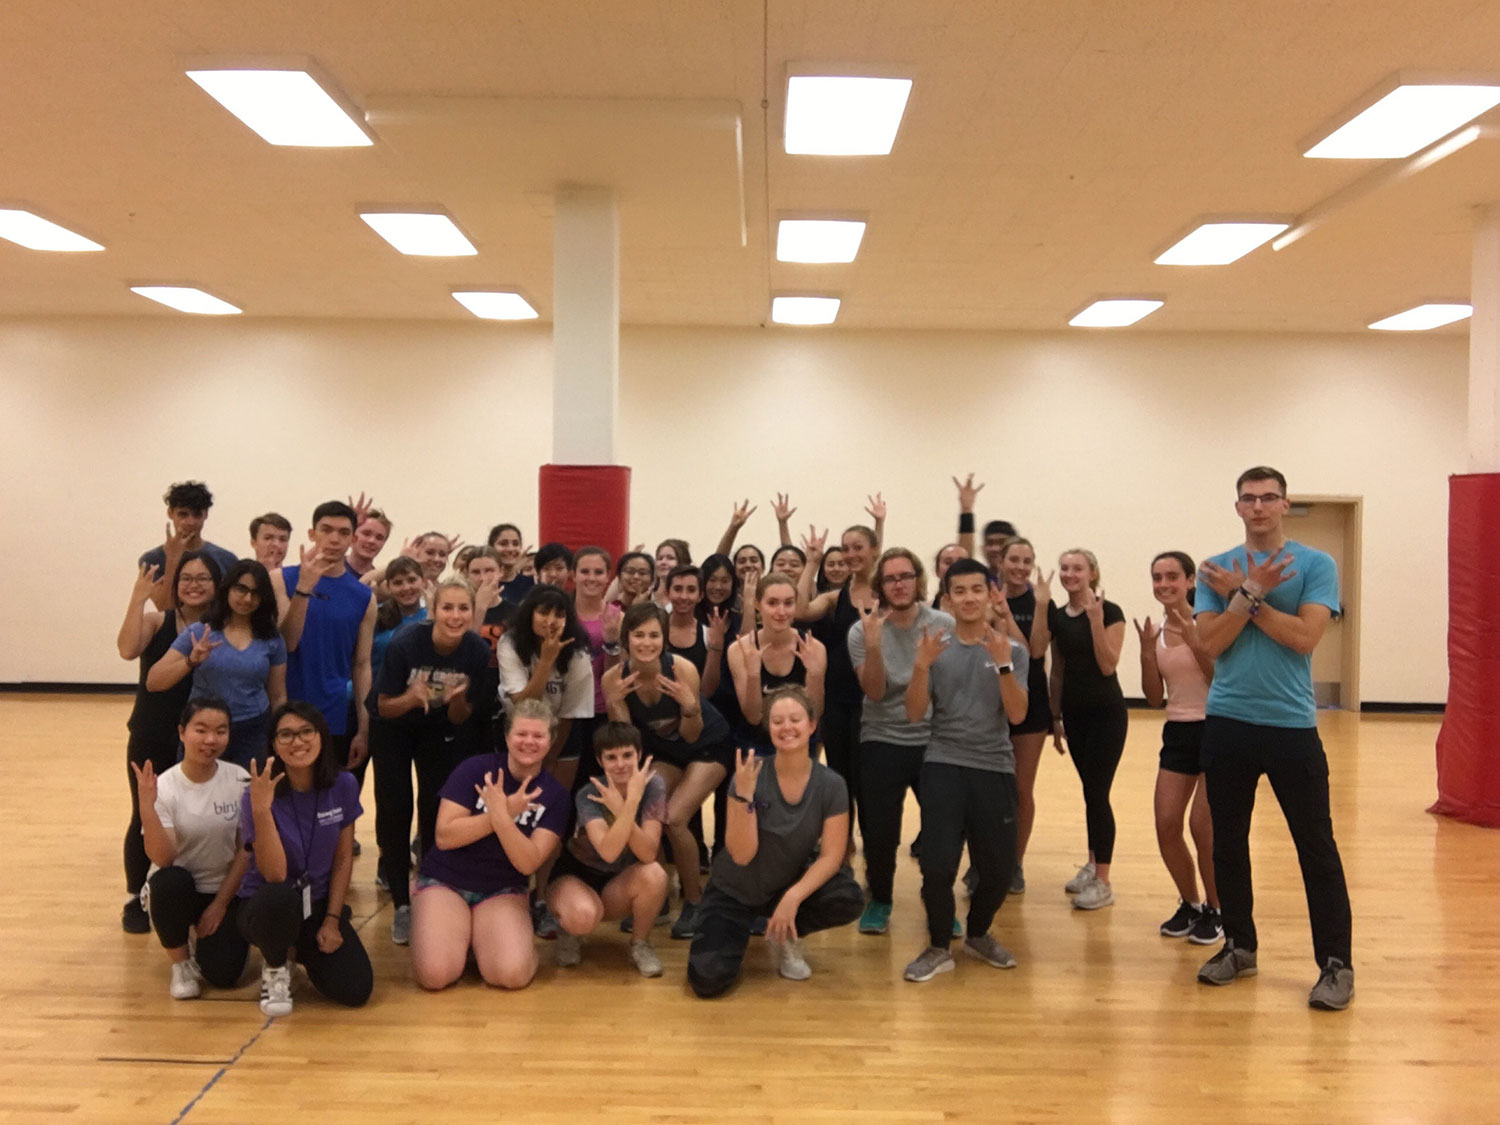 eldridge-kickboxing-class-with-dubs-up